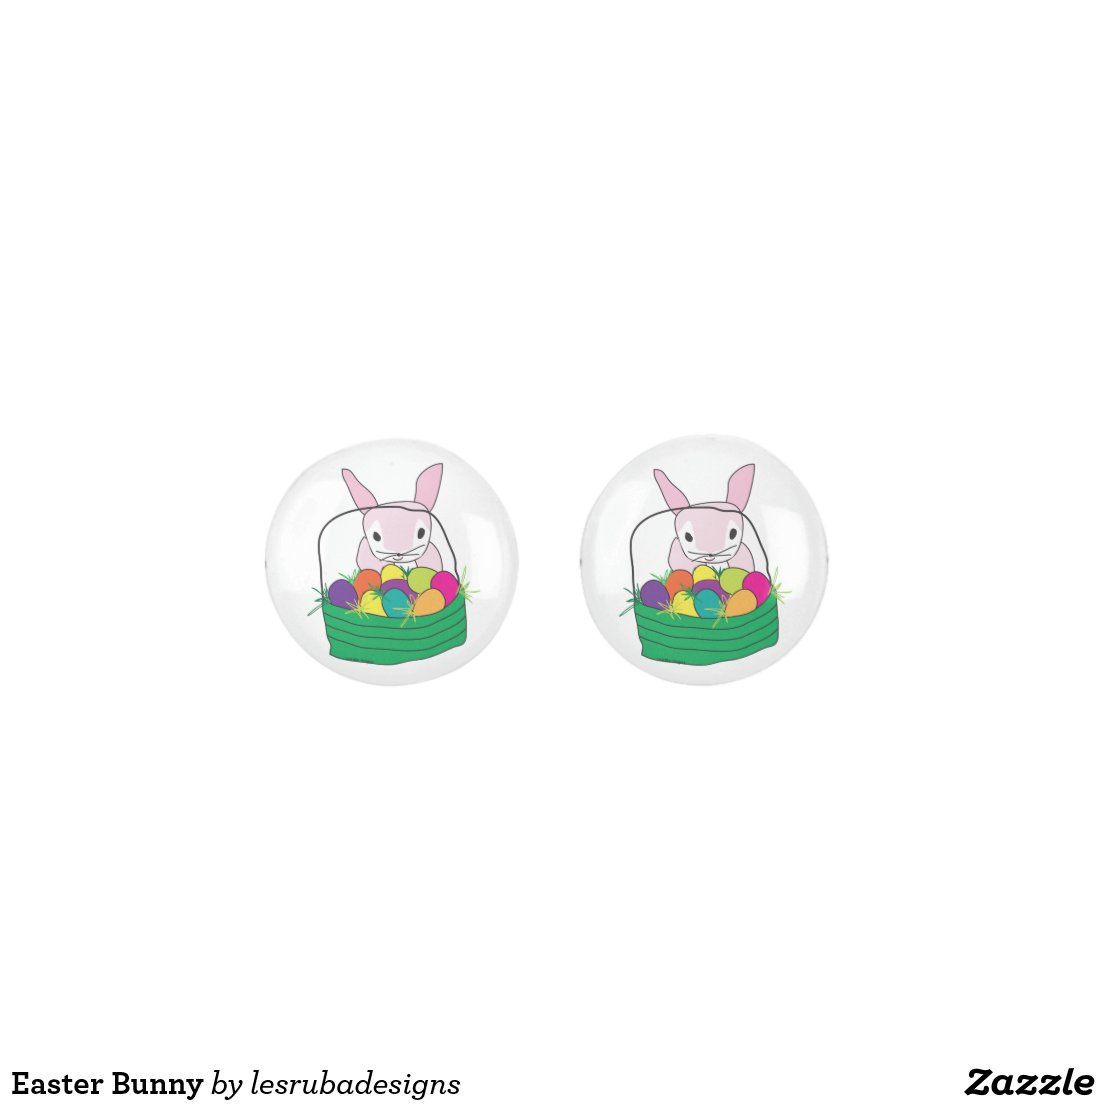 Easter Bunny button earrings